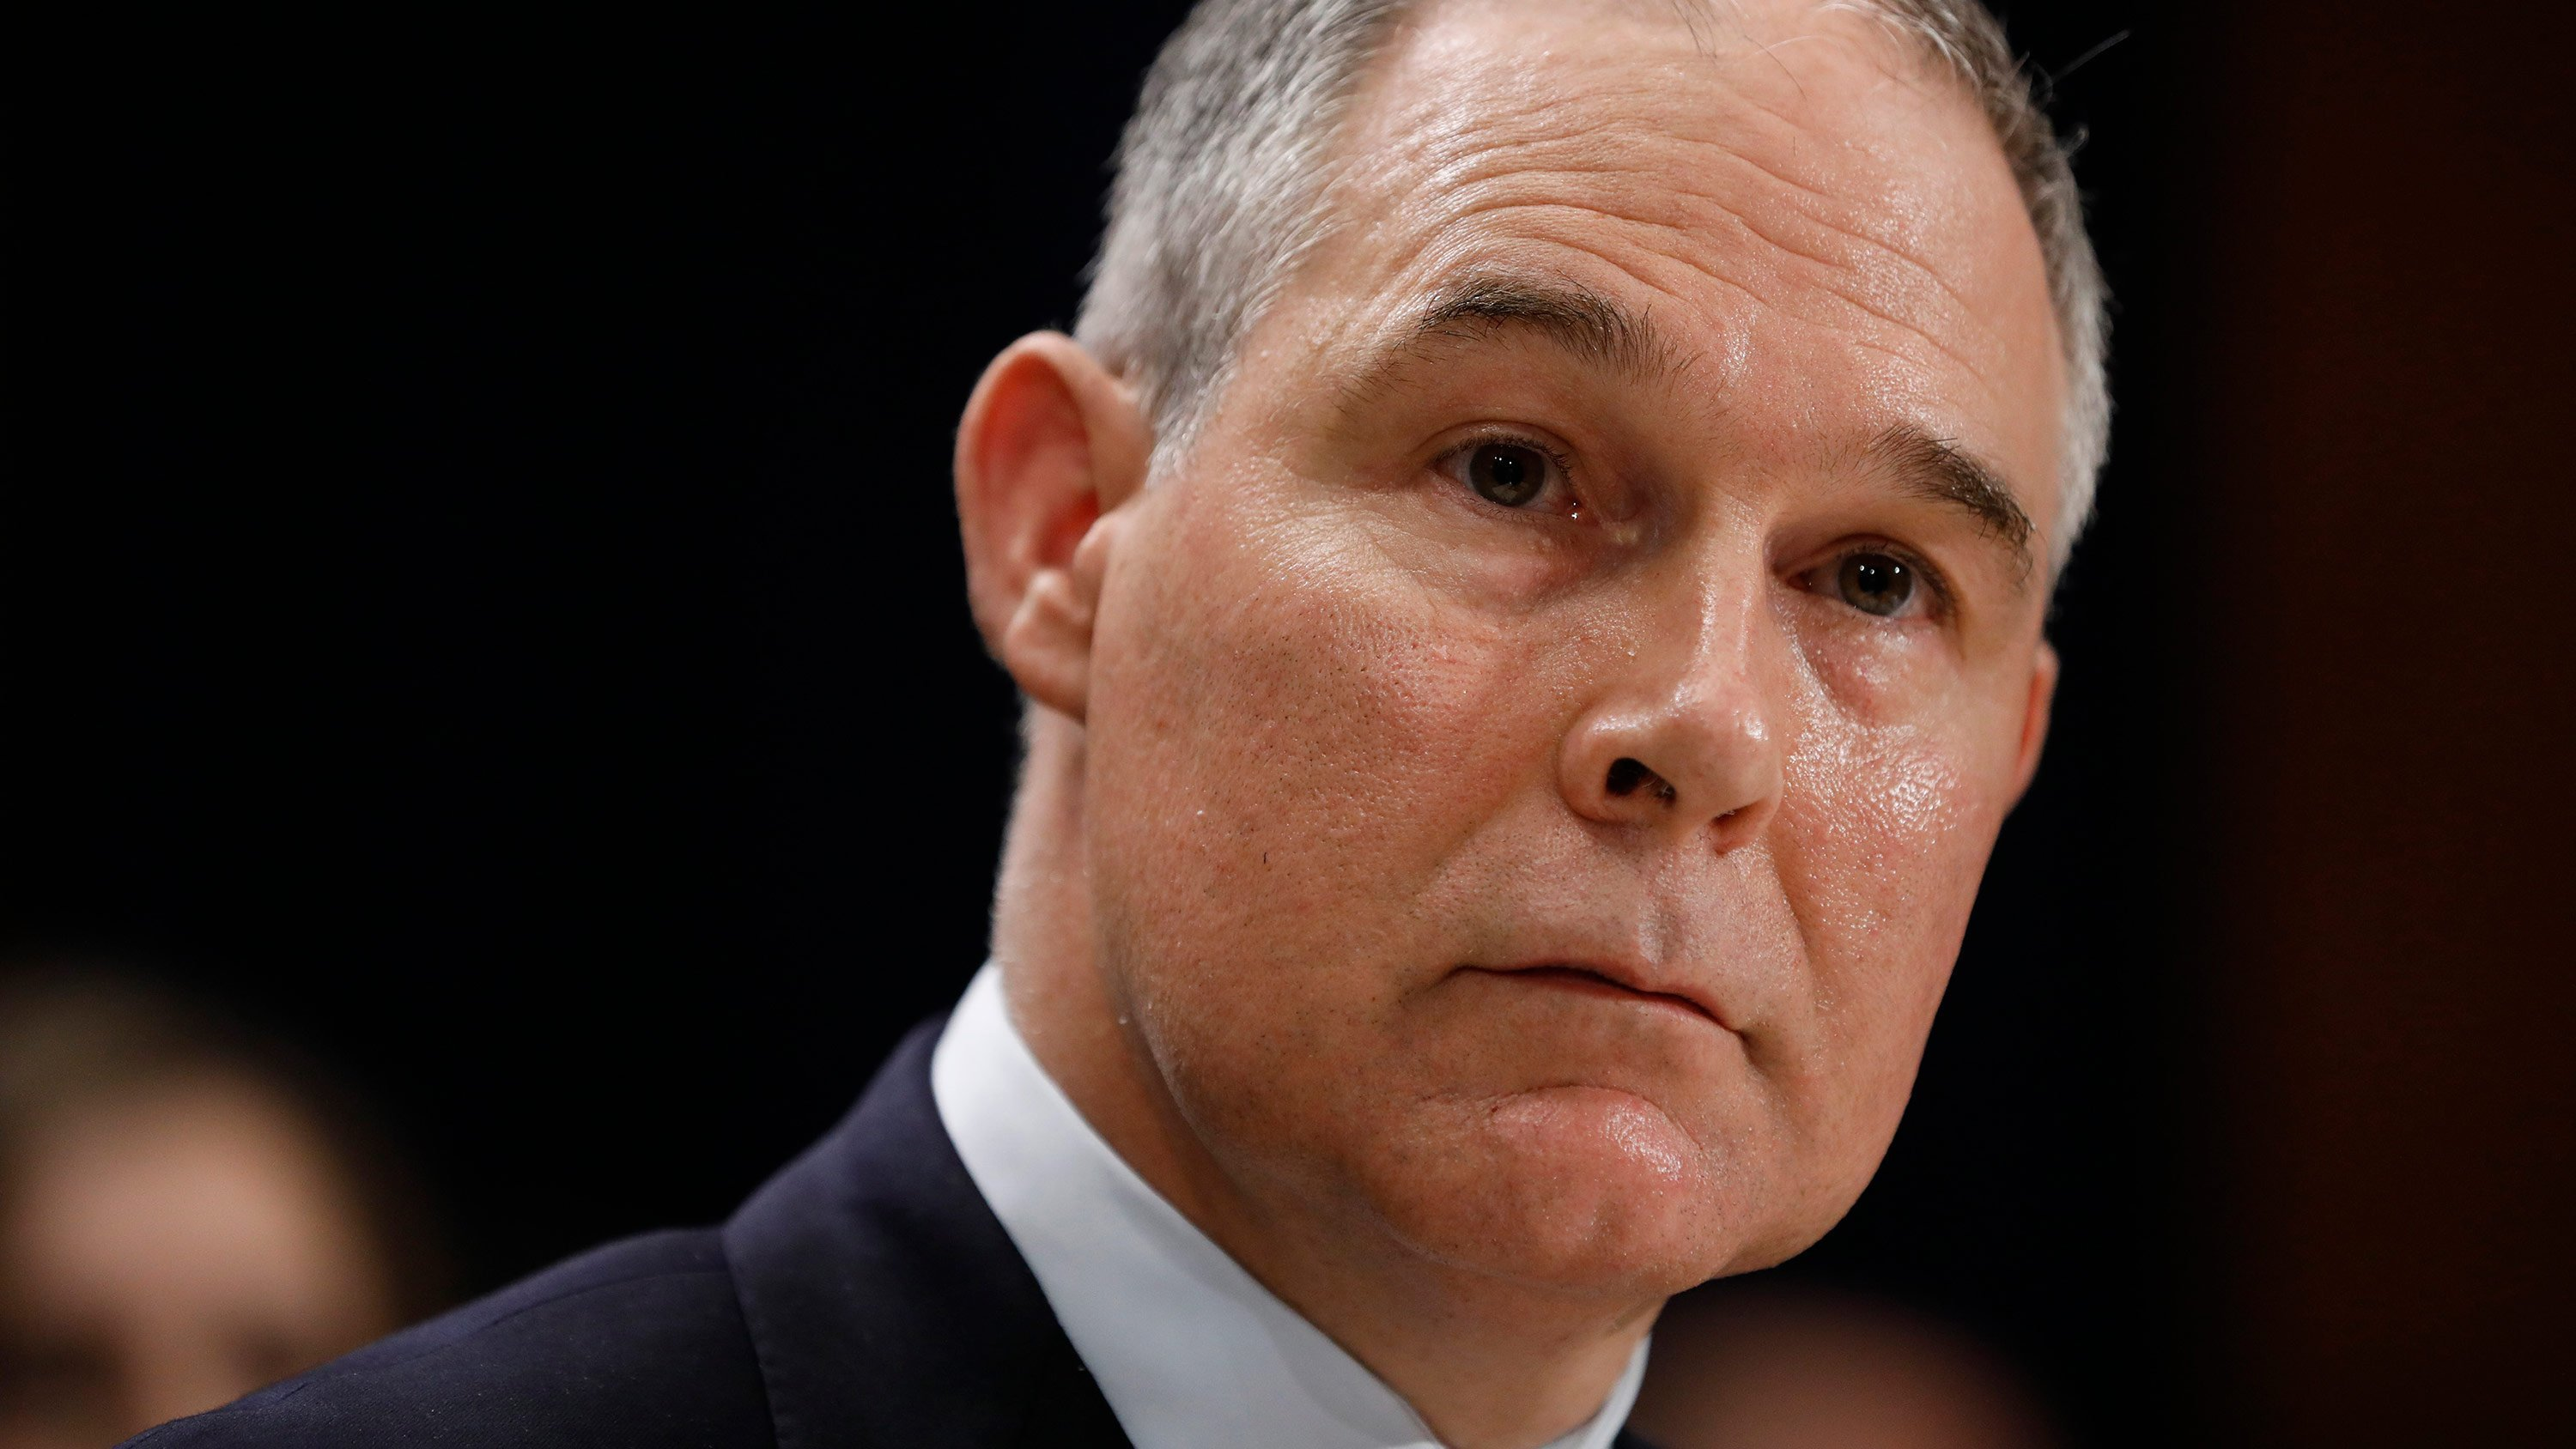 Democratic lawmakers ask for corruption investigation of EPA chief Scott Pruitt